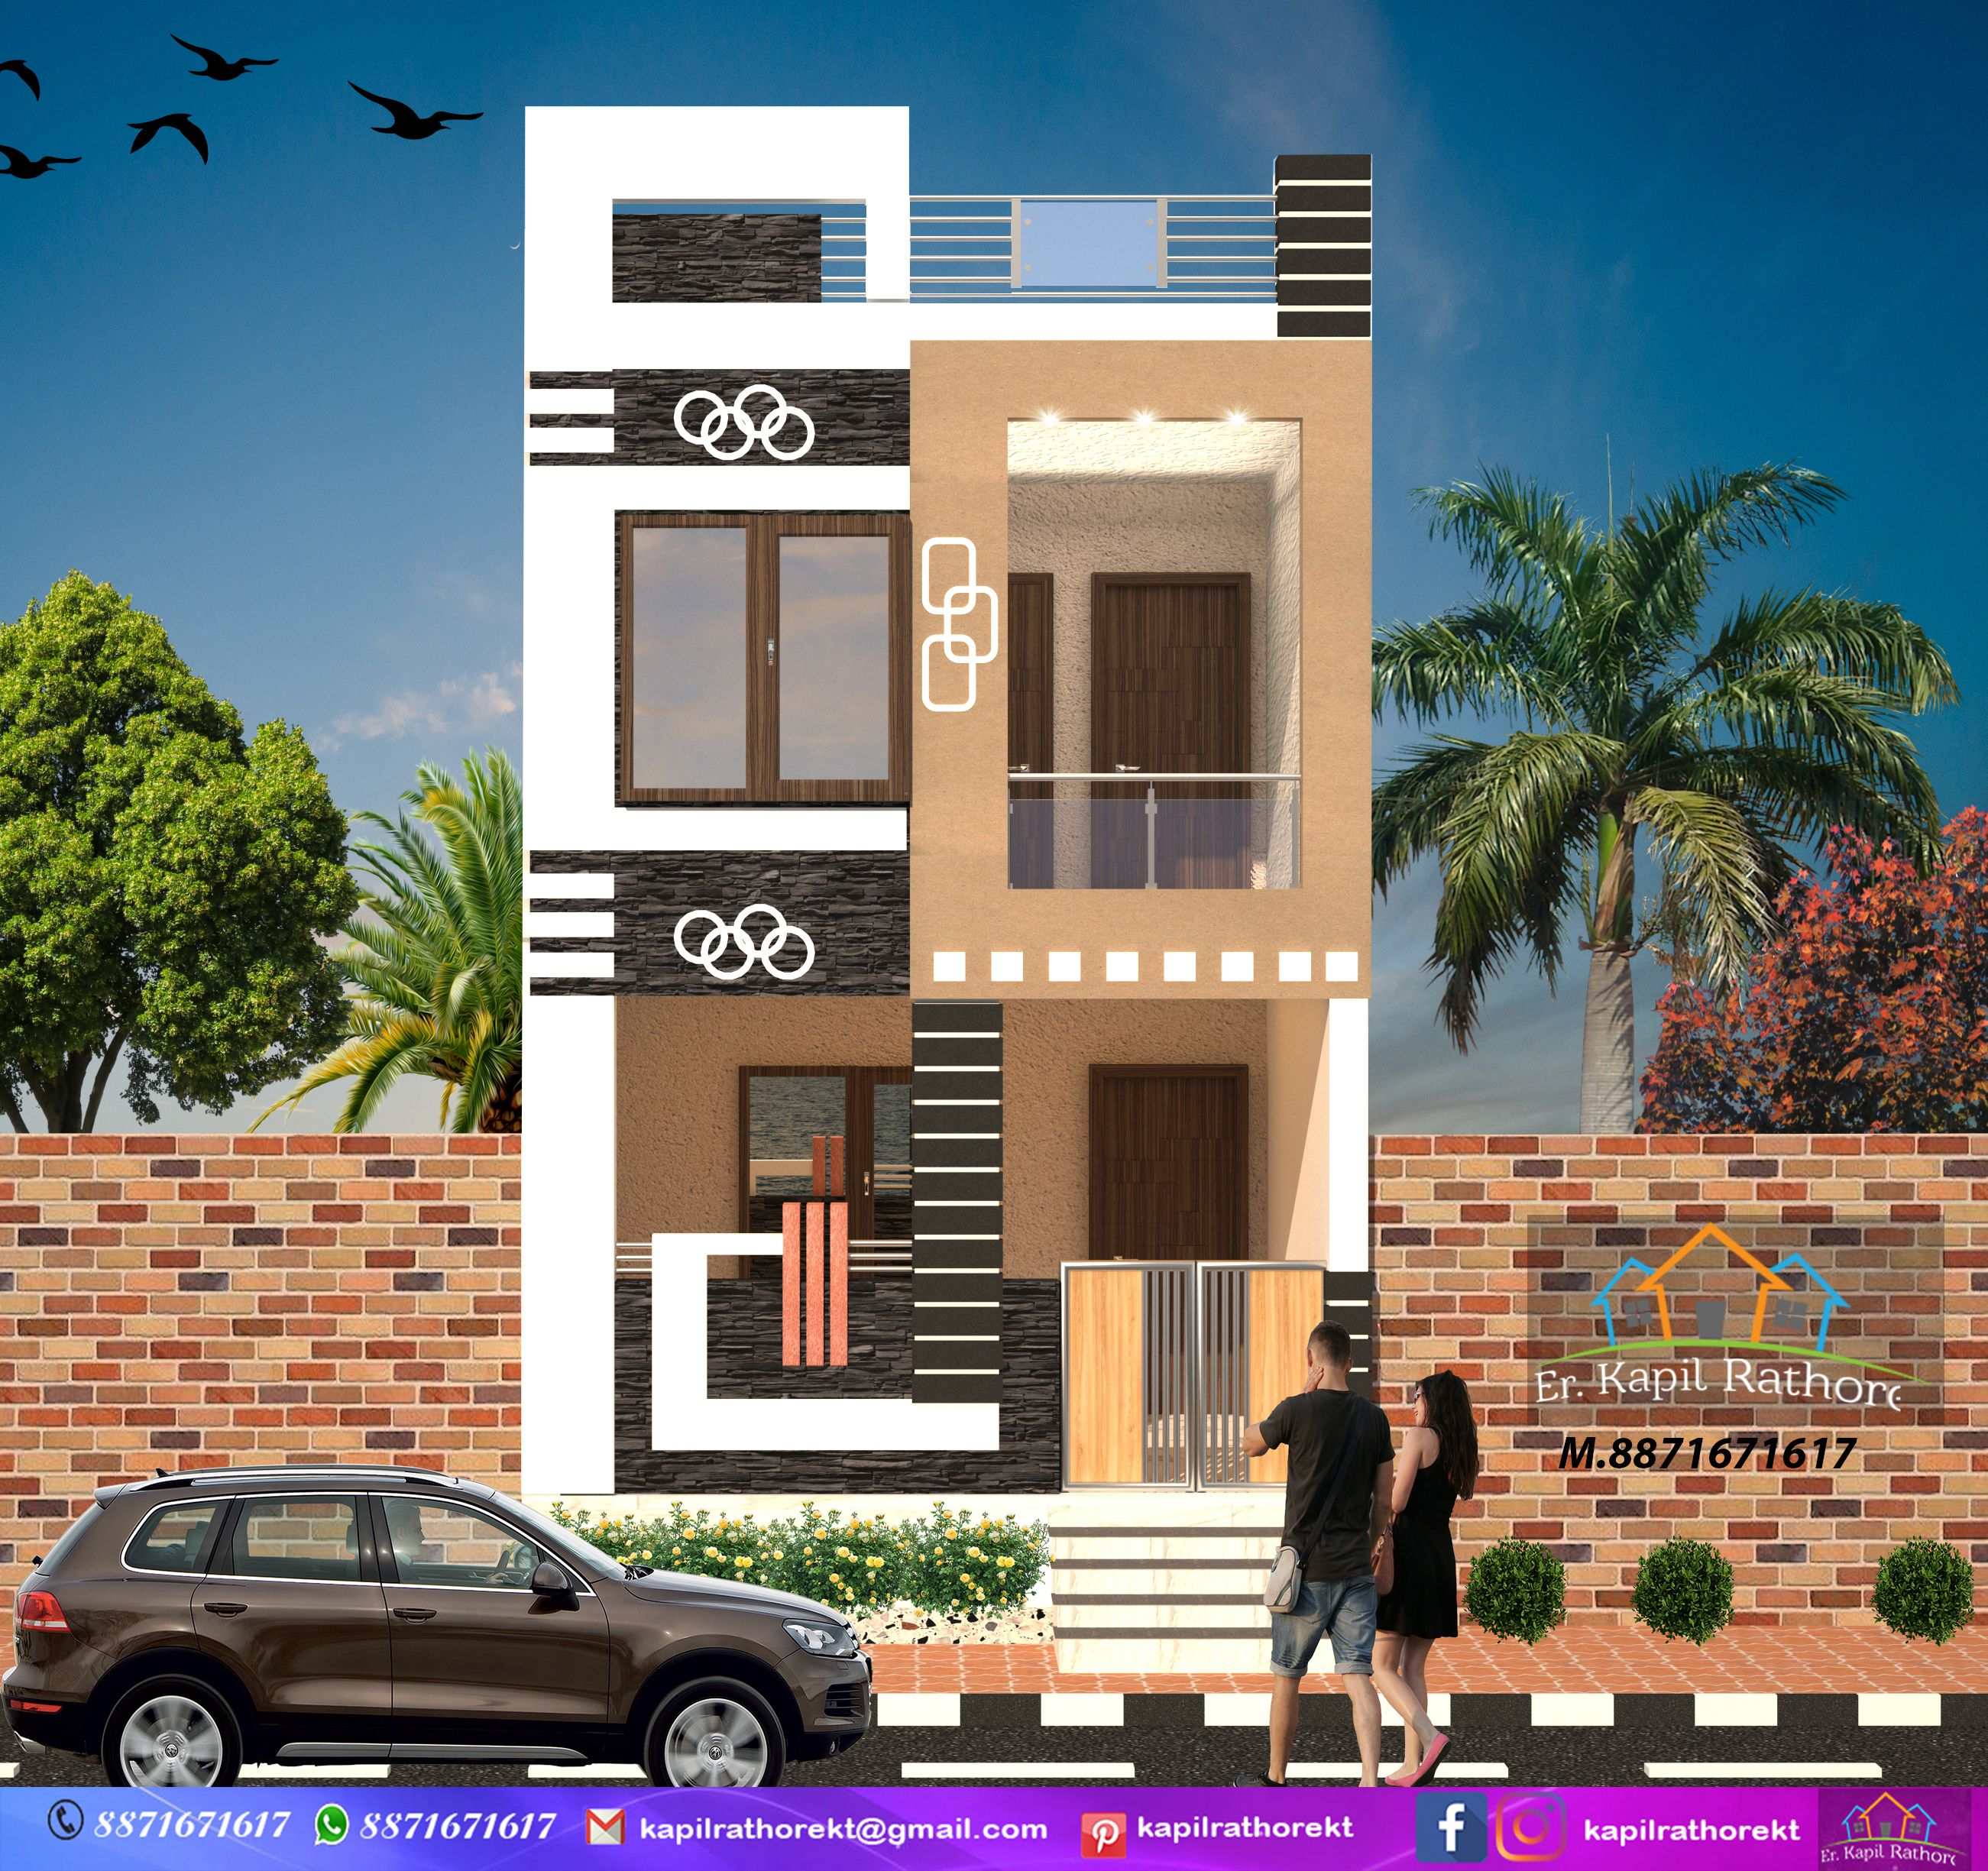 House Front Design, Architectural